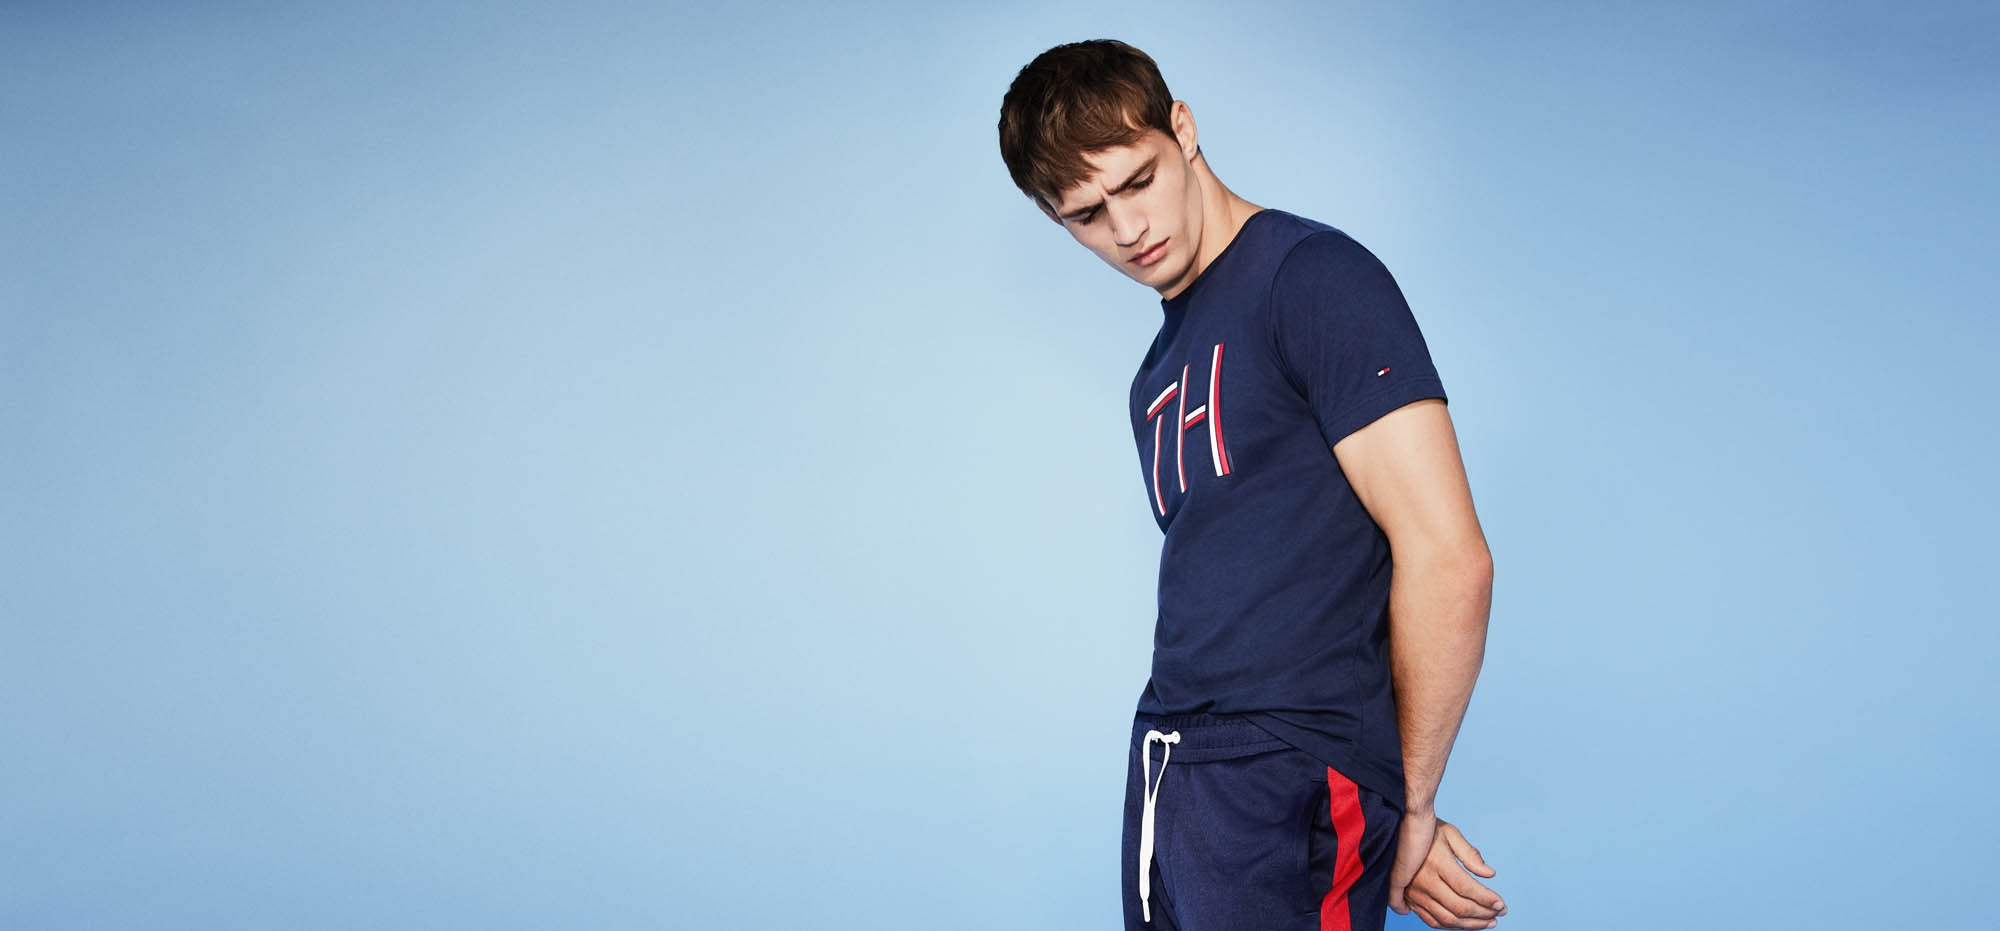 Urban sport. Bold colors and streamlined graphics hit the street. Male model wearing signature tee and athletic pants.